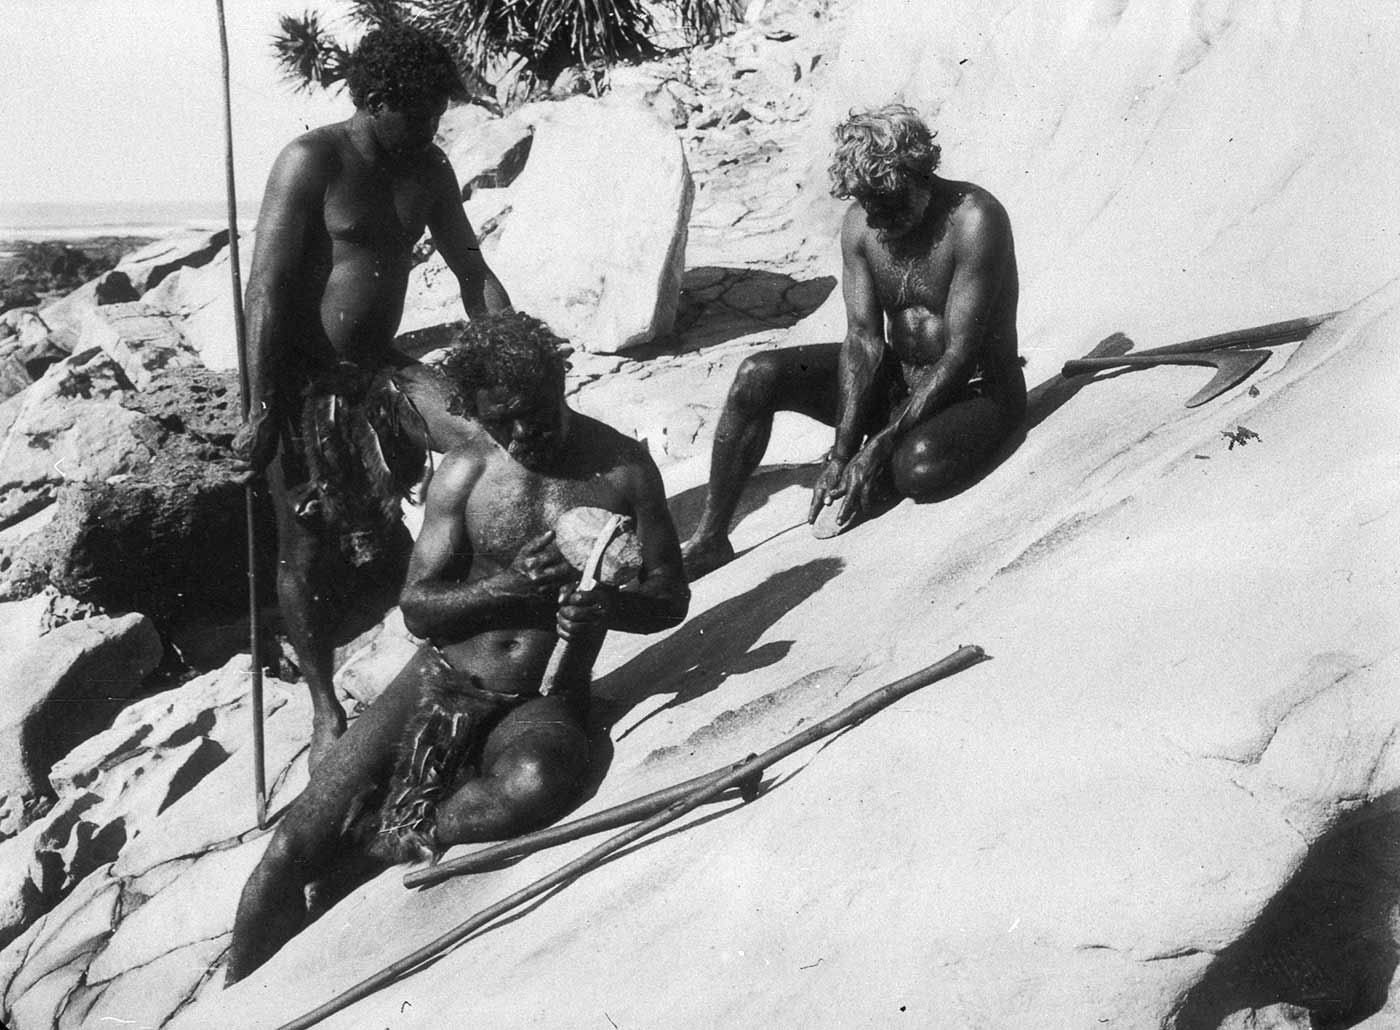 Black and white photograph of three men positioned on a rocky slope, making stone tools. - click to view larger image